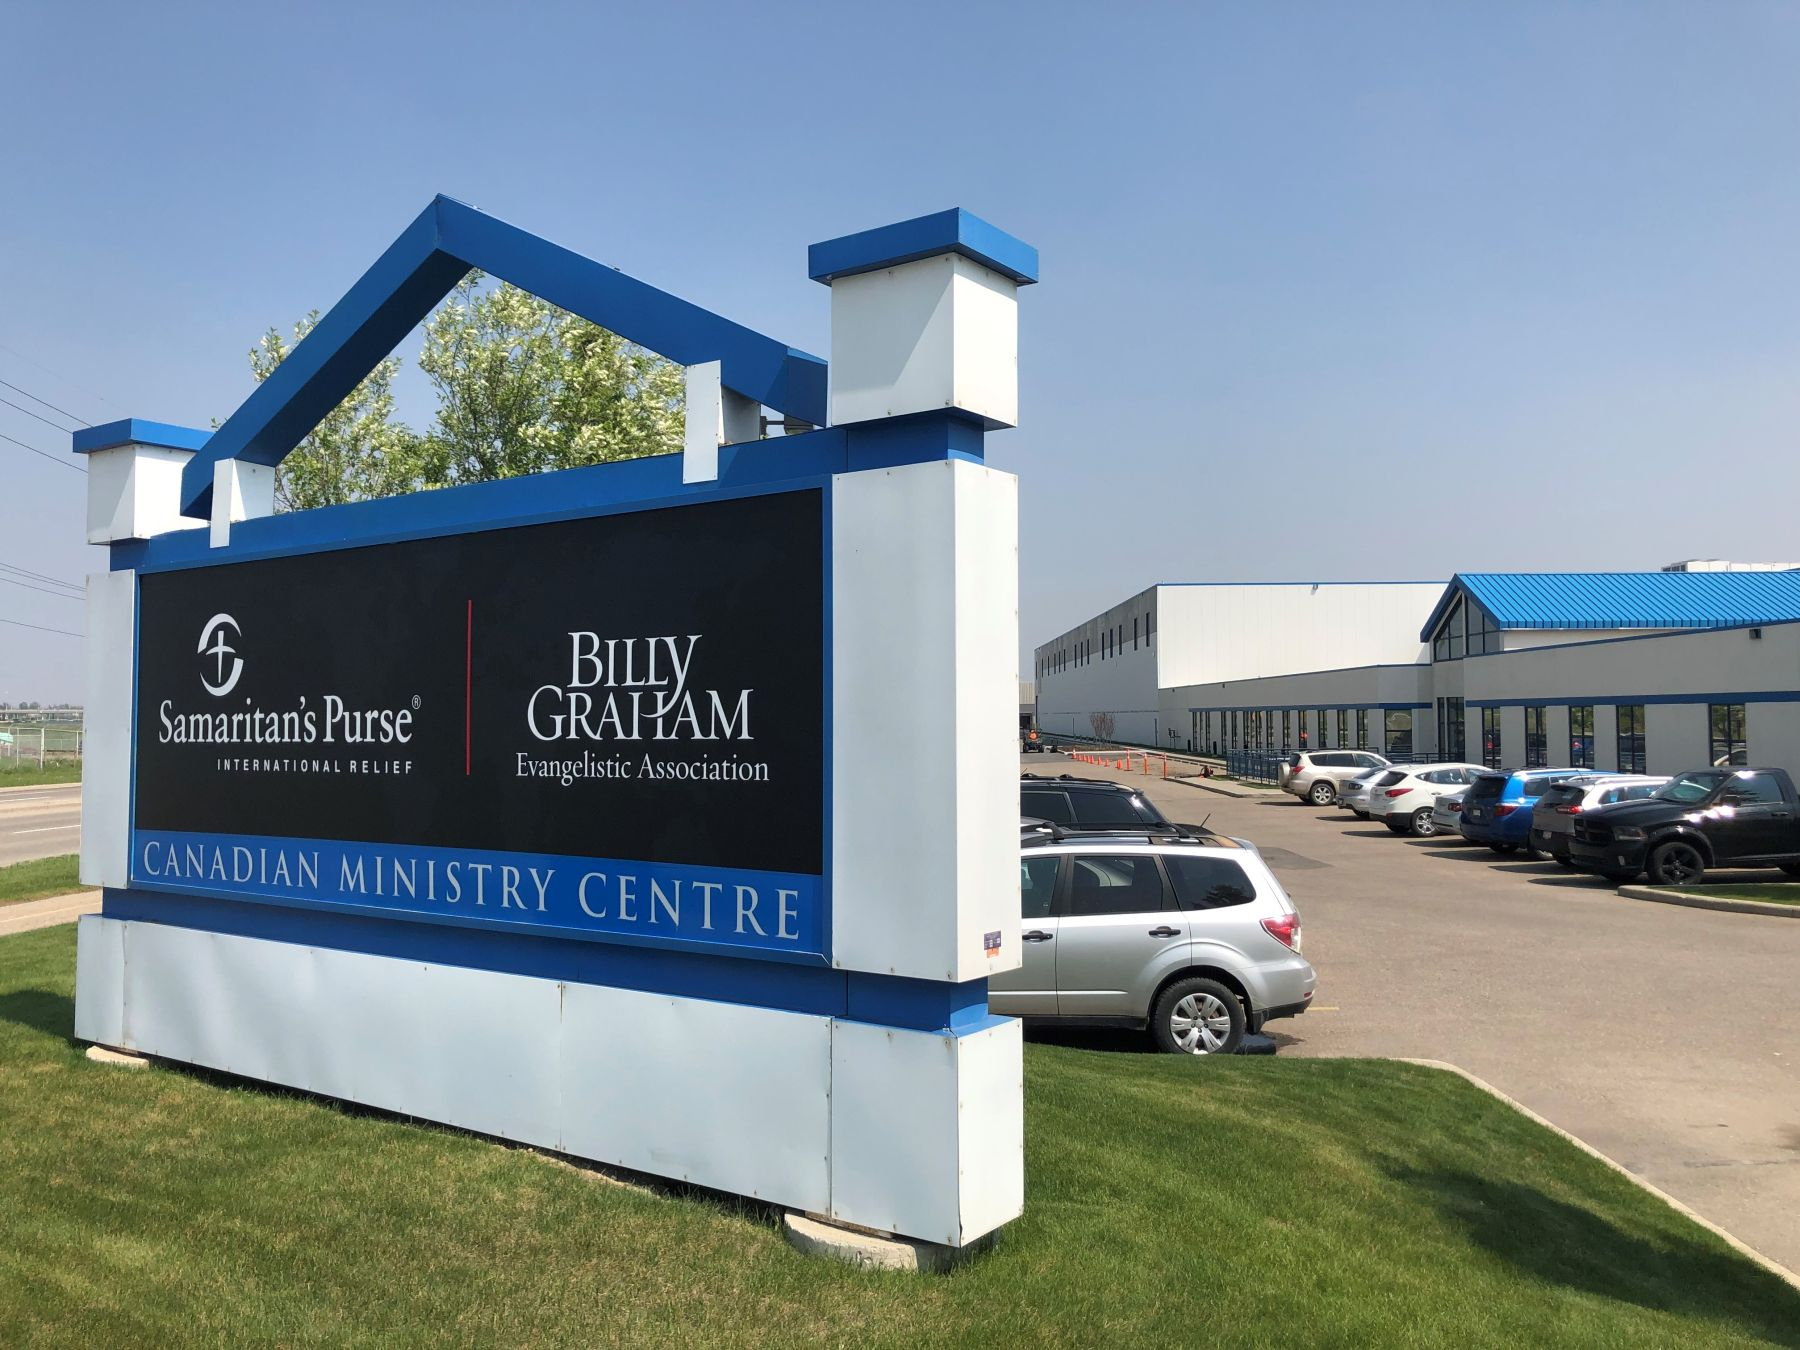 The Samaritan's Purse Canada office is located in Calgary, AB.